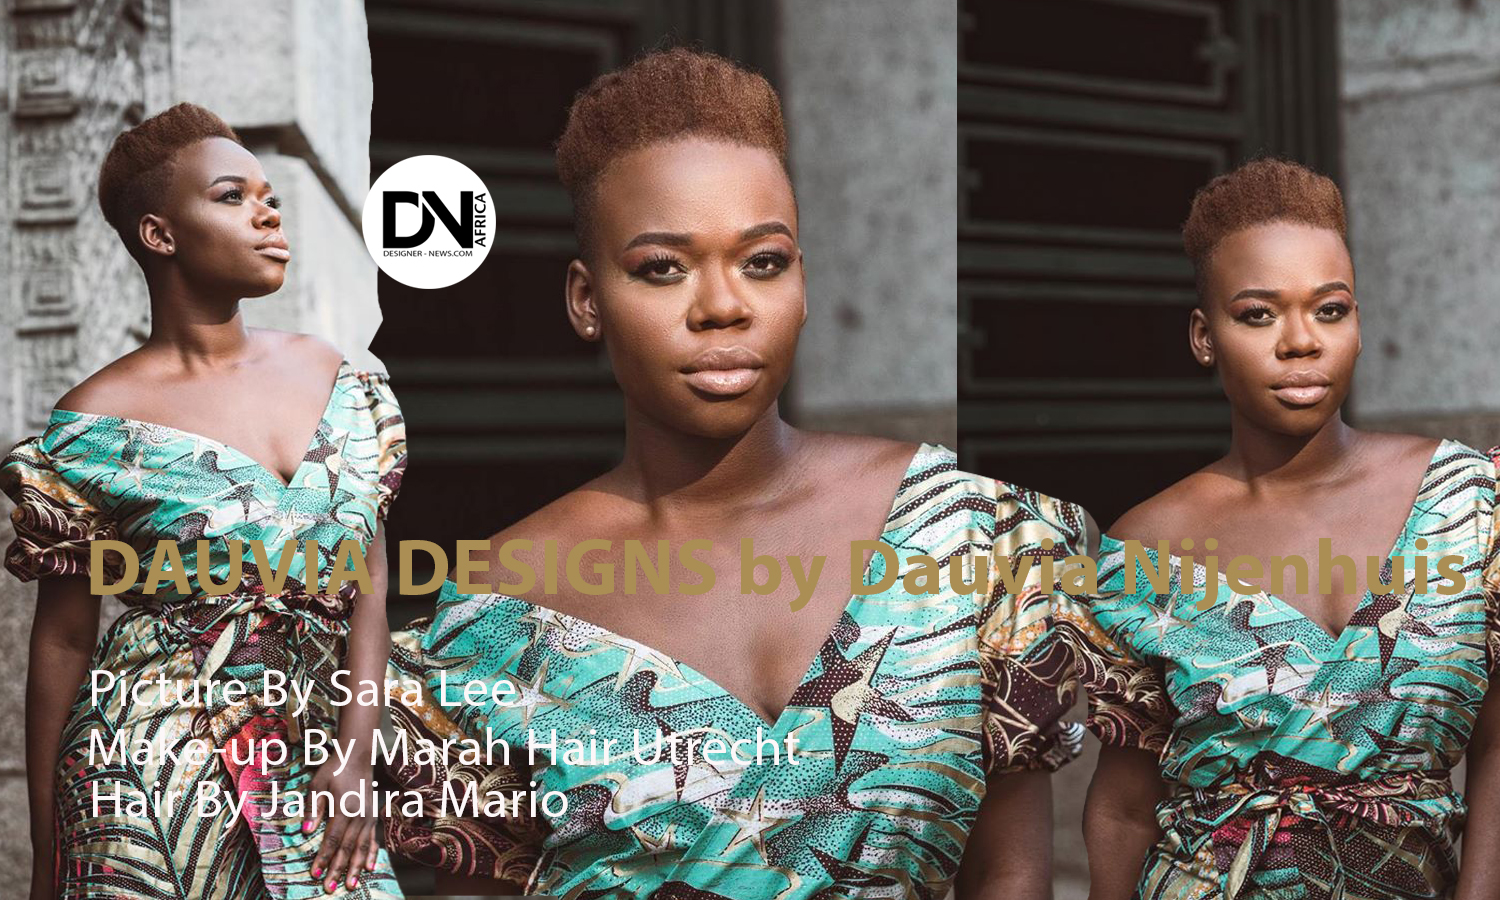 AFRICAN FASHION STYLE MAGAZINE - DAUVIA-DESIGNS-by-Dauvia-Nijenhuis - Picture by Sara Lee - Makeup by Marah Hair Utrecht - Hair by Jandira Mario - Vlisco Prints _ Model Dauvia Nijenhui - Photographer DAN NGU - Media Partner DN AFRICA - STUDIO 24 NIGERIA - STUDIO 24 INTERNATIONAL - Ifeanyi Christopher Oputa MD AND CEO OF COLVI LIMITED AND STUDIO 24 - CHEVEUX CHERIE and CHEVEUX CHERIE STUDIO BY MARIEME DUBOZ- Fashion Editor Nahomie NOOR COULIBALY